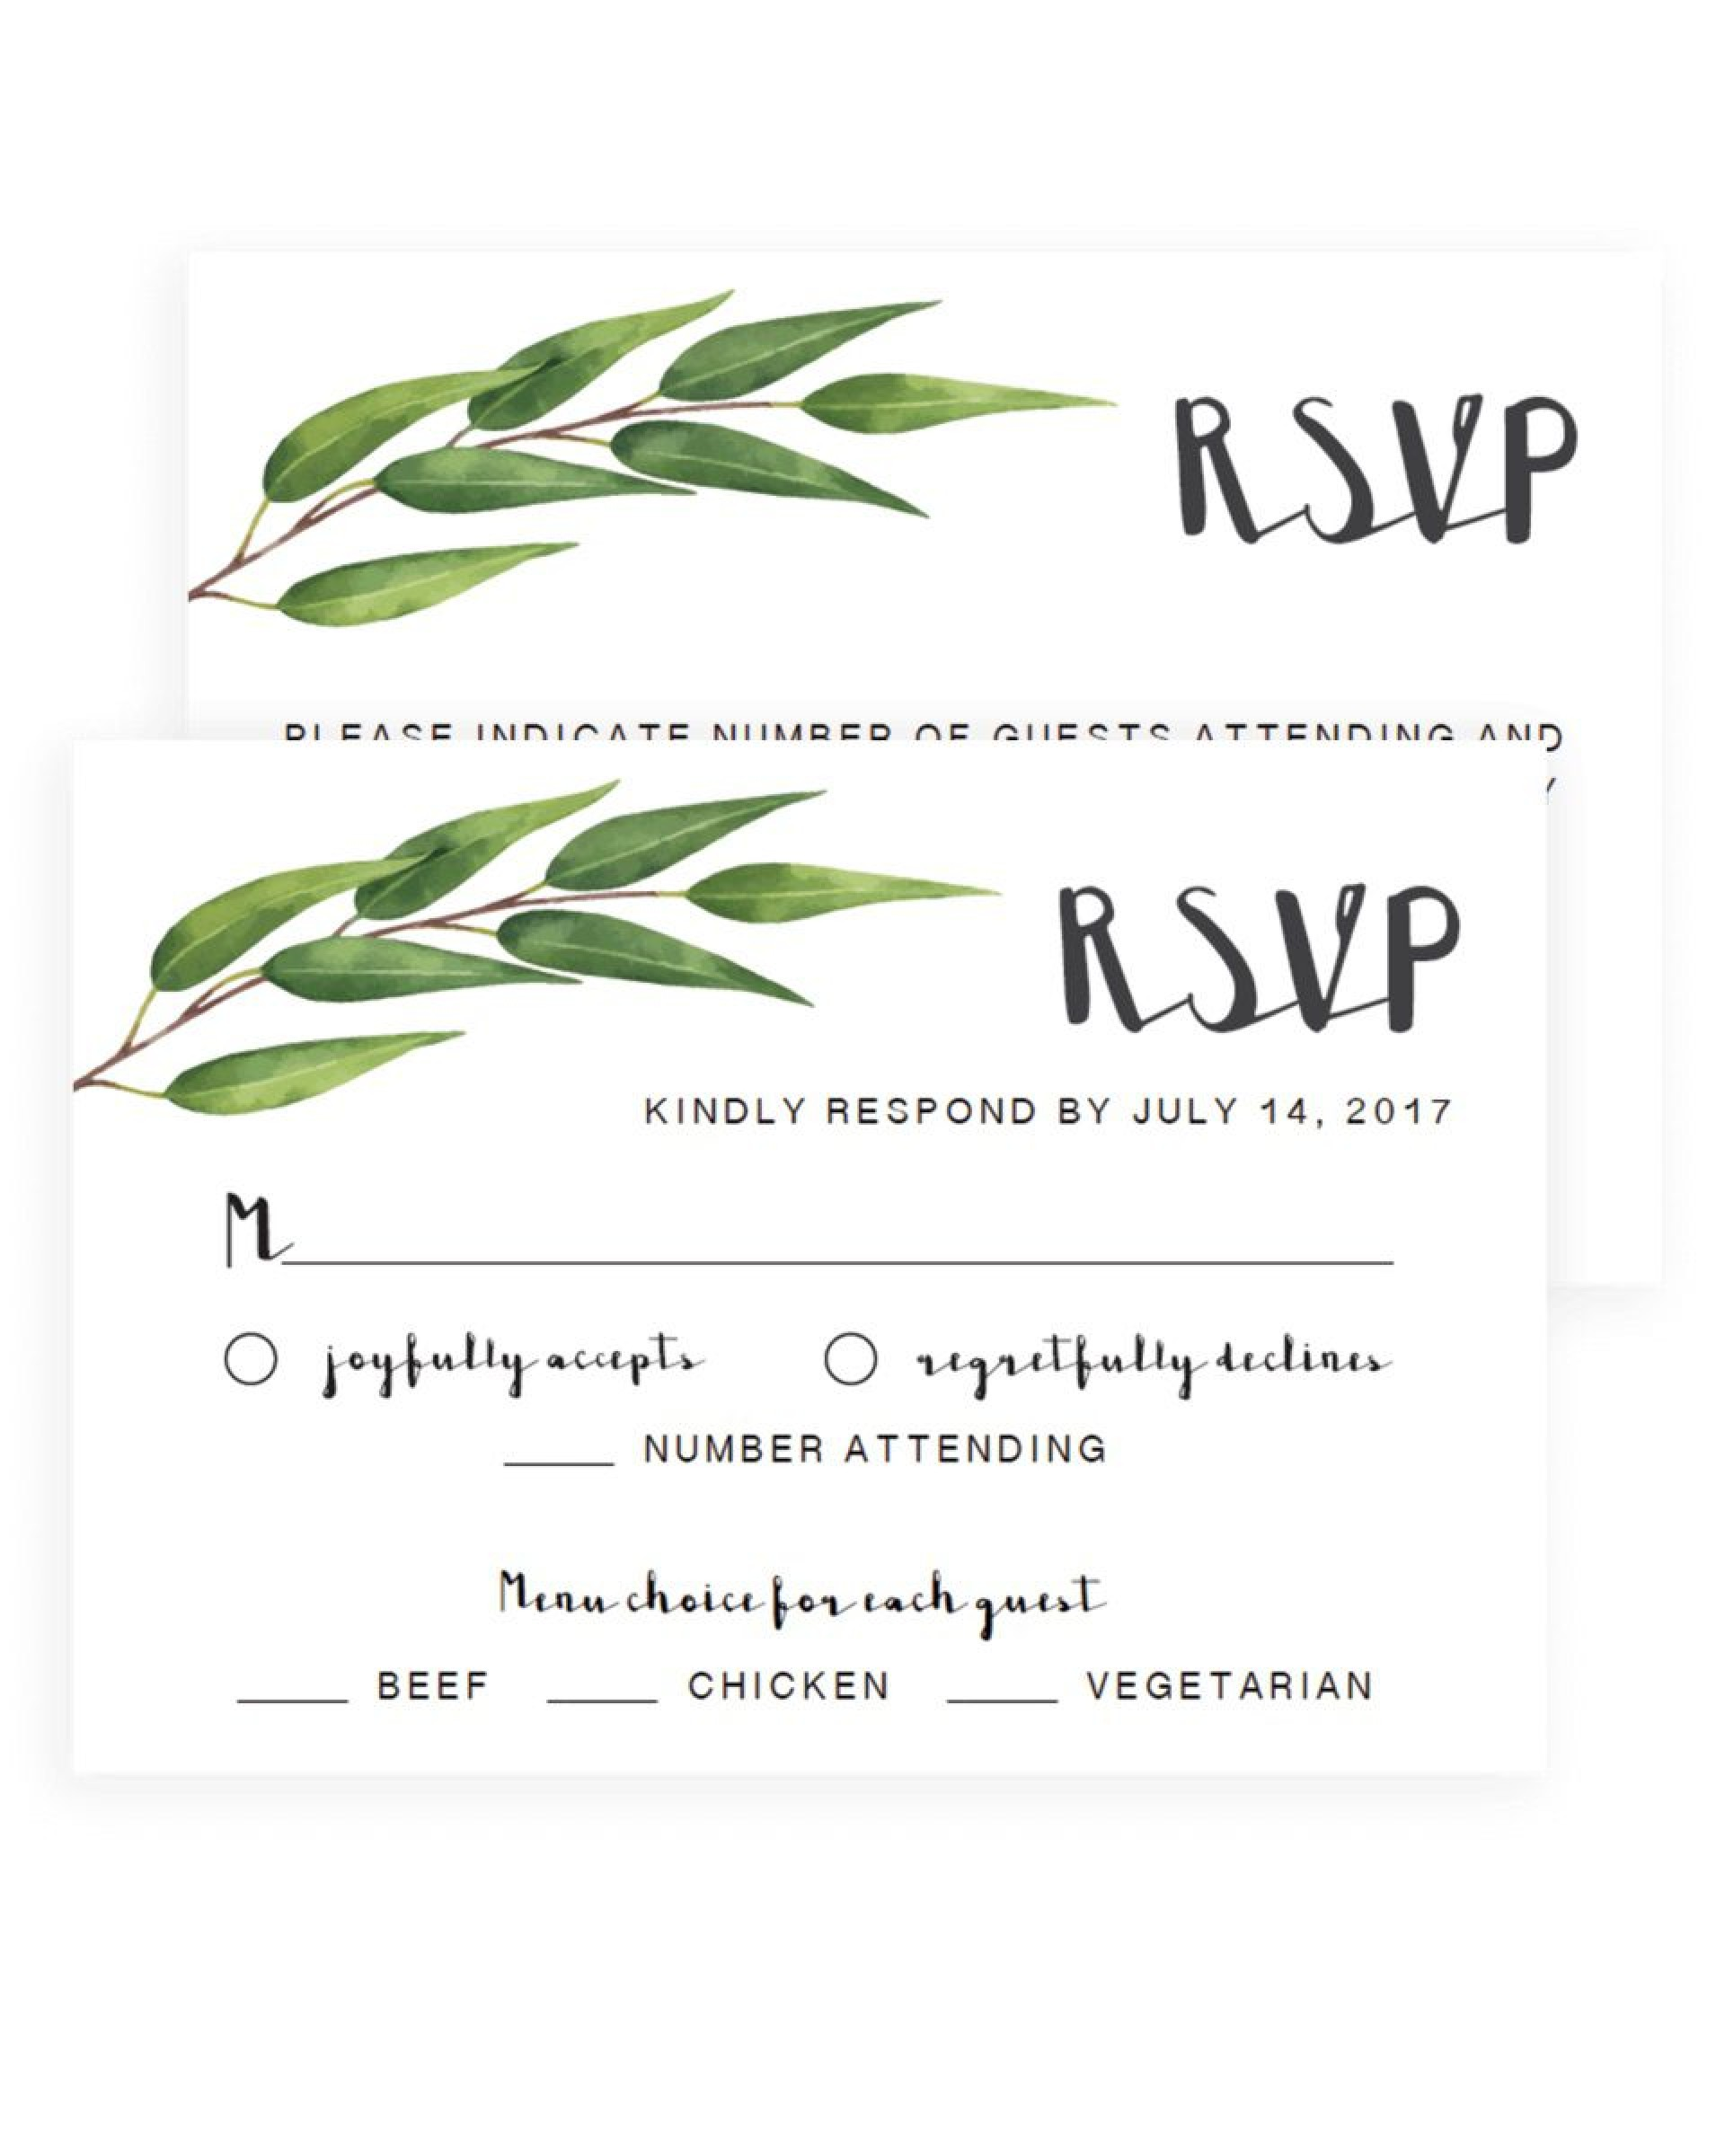 005 Impressive Wedding Rsvp Card Template Concept  Templates Invitation Menu Free Printable1920